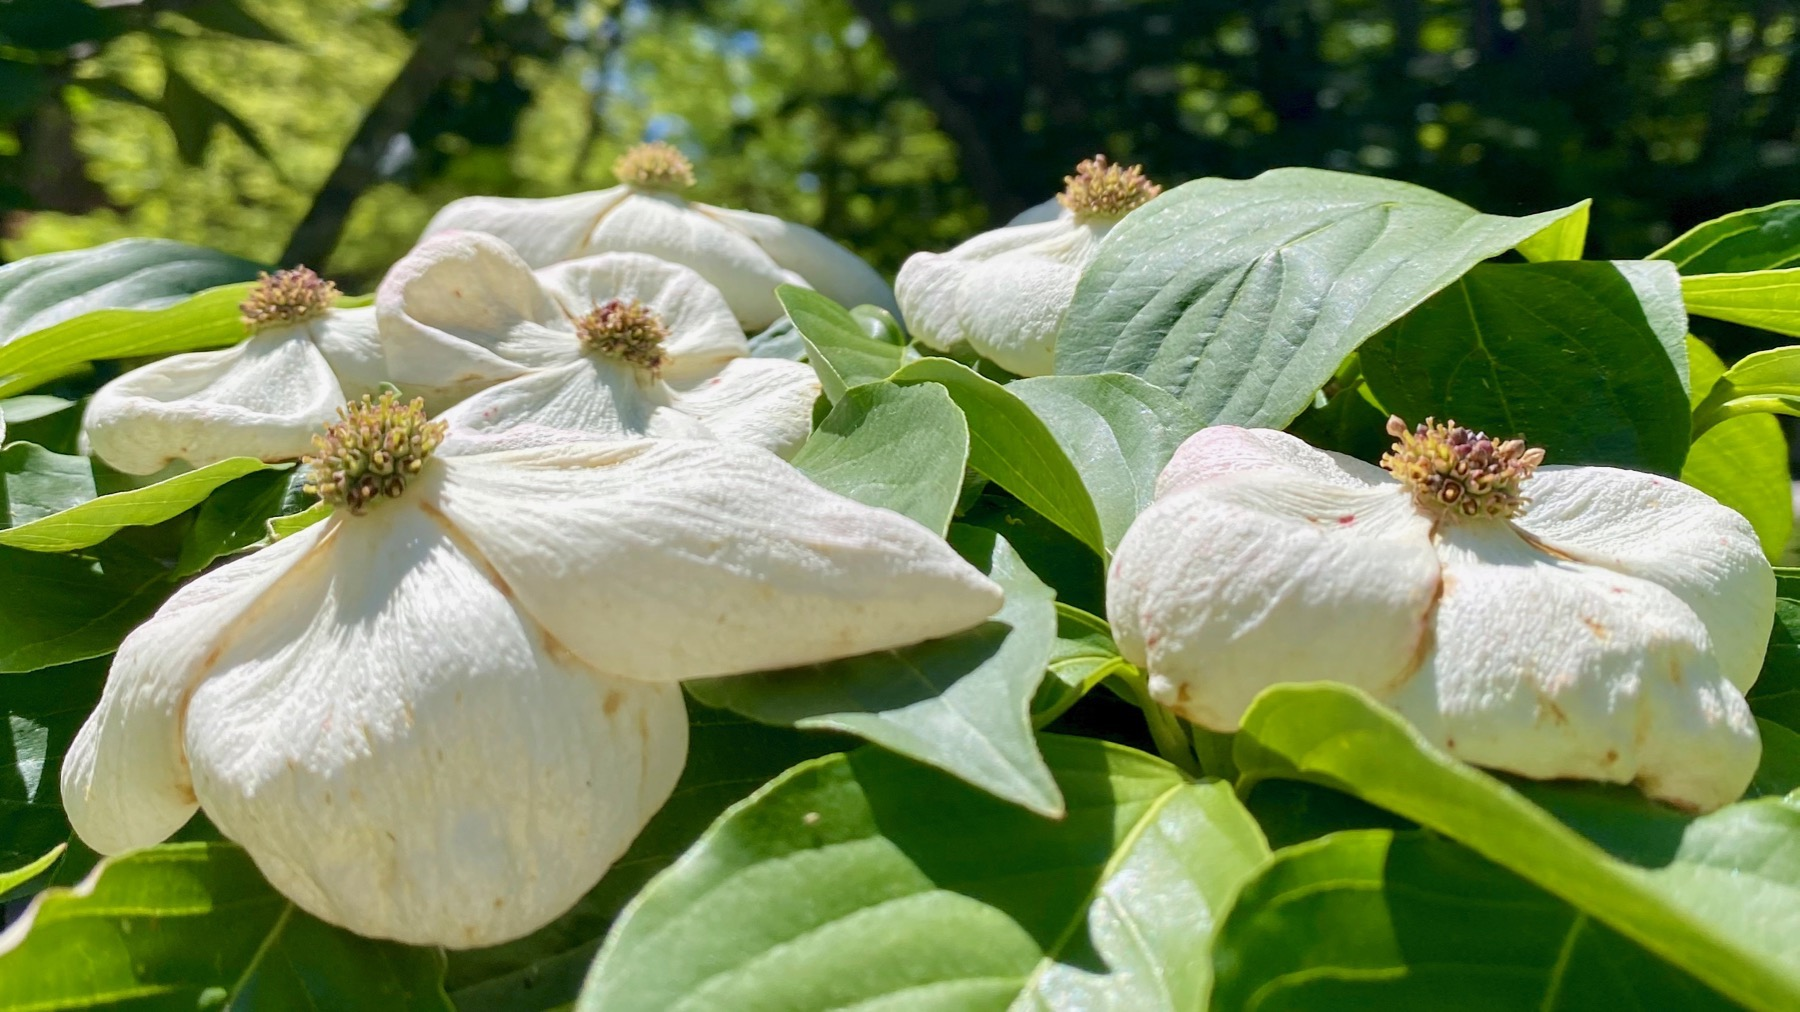 Dogwood blooms fading